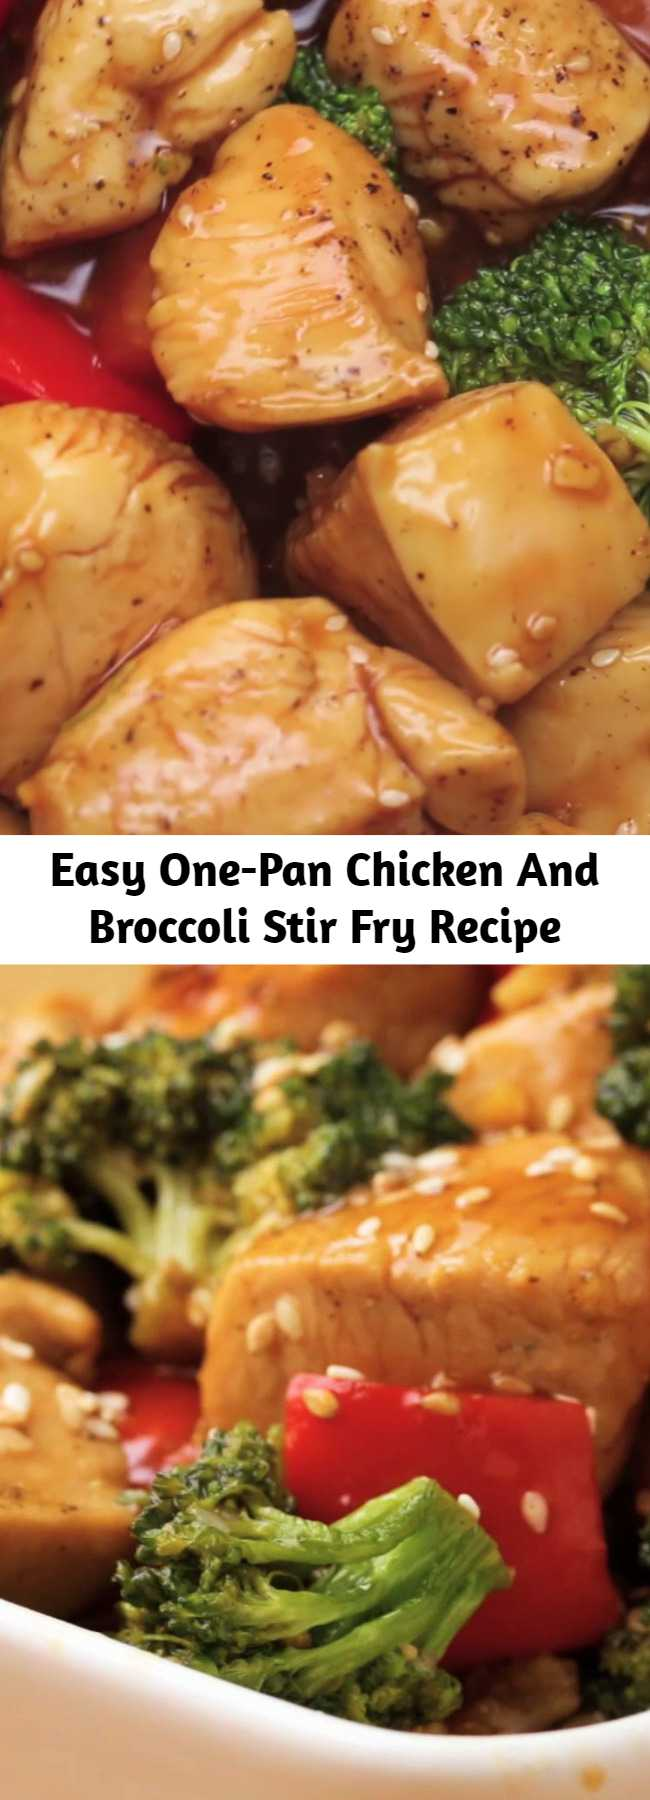 Easy One-Pan Chicken And Broccoli Stir Fry Recipe - This recipe for chicken and broccoli stir fry is a classic dish of chicken sauteed with fresh broccoli florets and coated in a savory sauce. You can have a healthy and easy dinner on the table in 30 minutes!